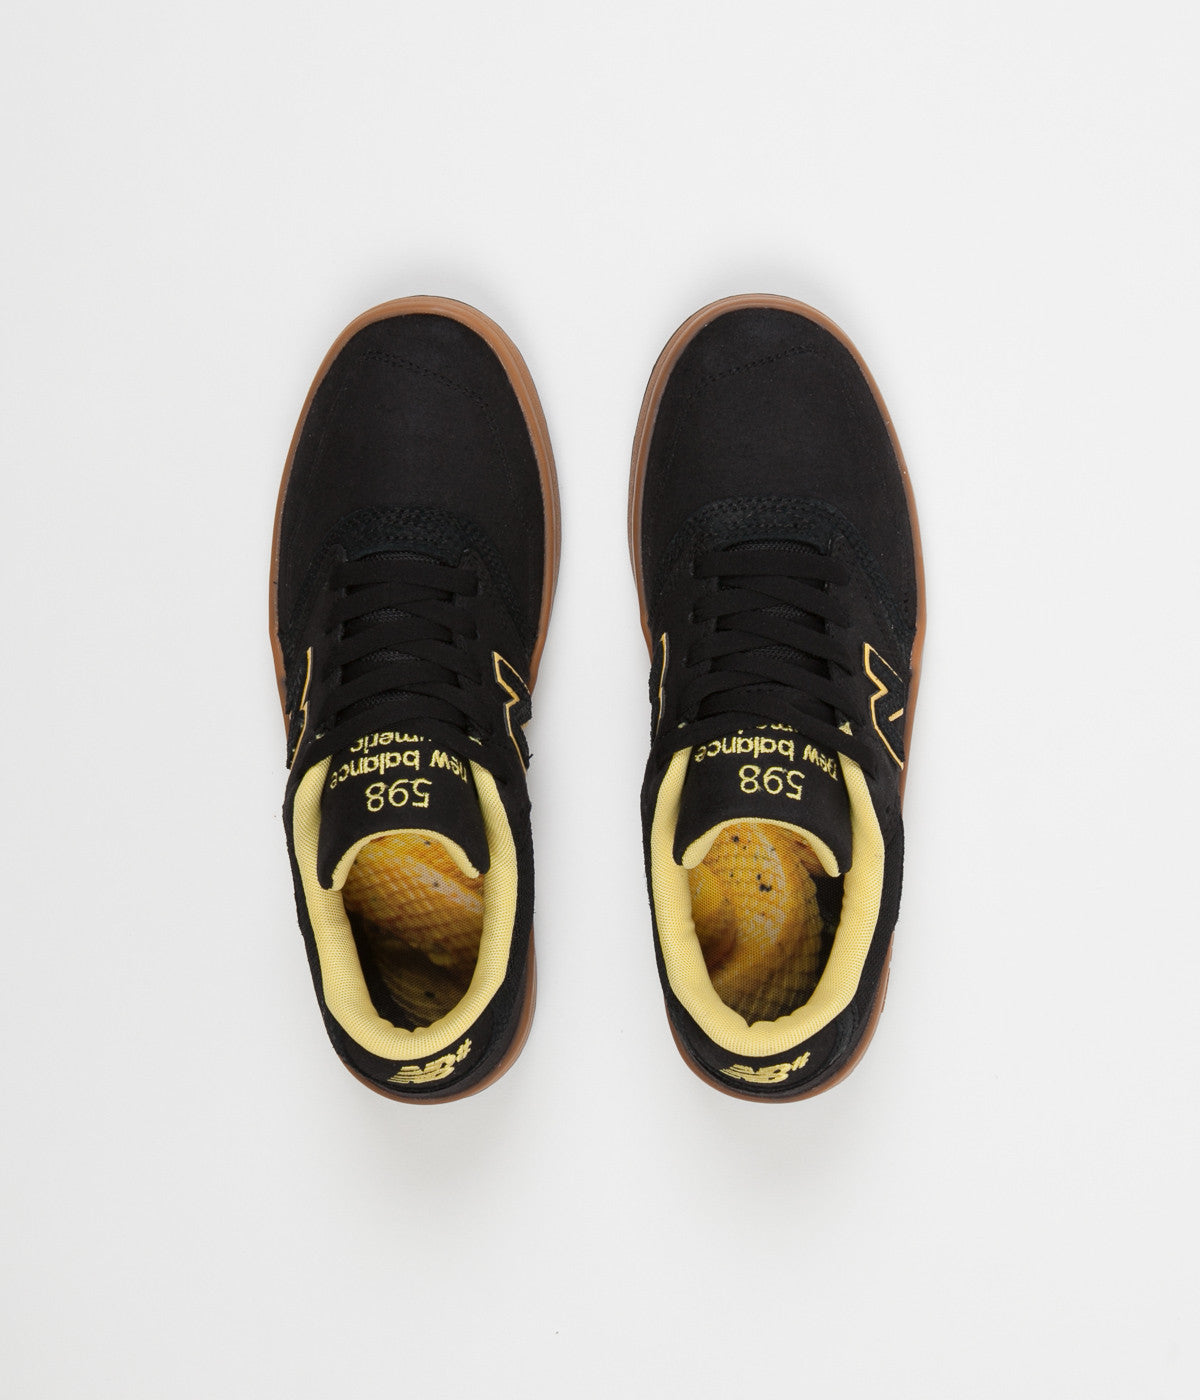 New Balance Numeric 598 Shoes - Black / Gum